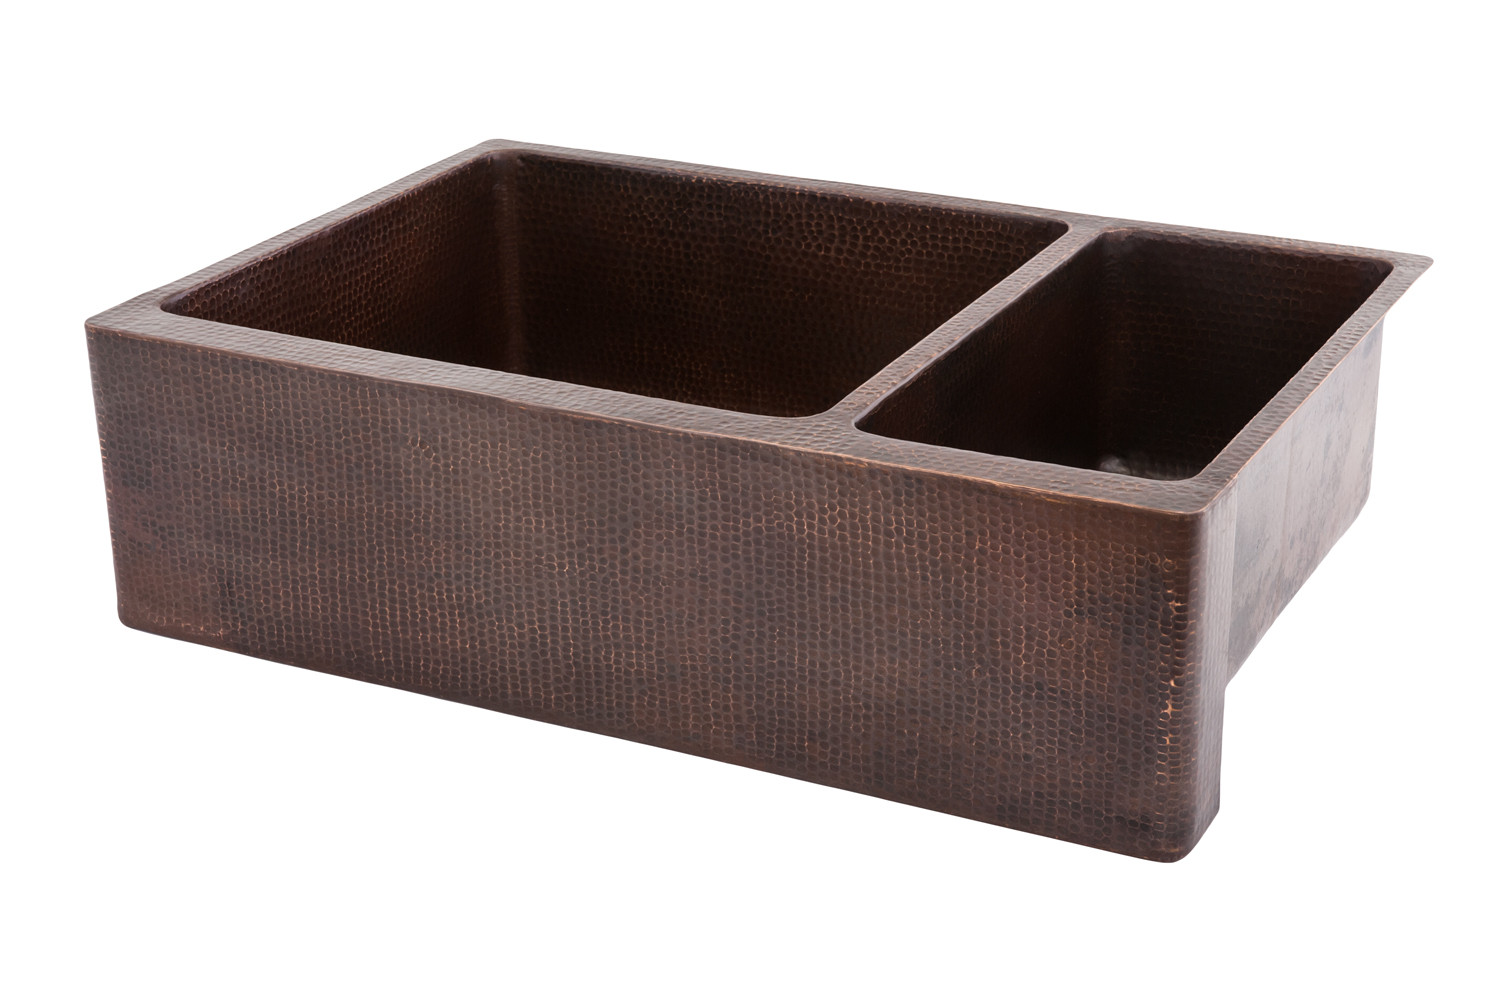 Premier Copper Products KA75DB33229 Copper Sink